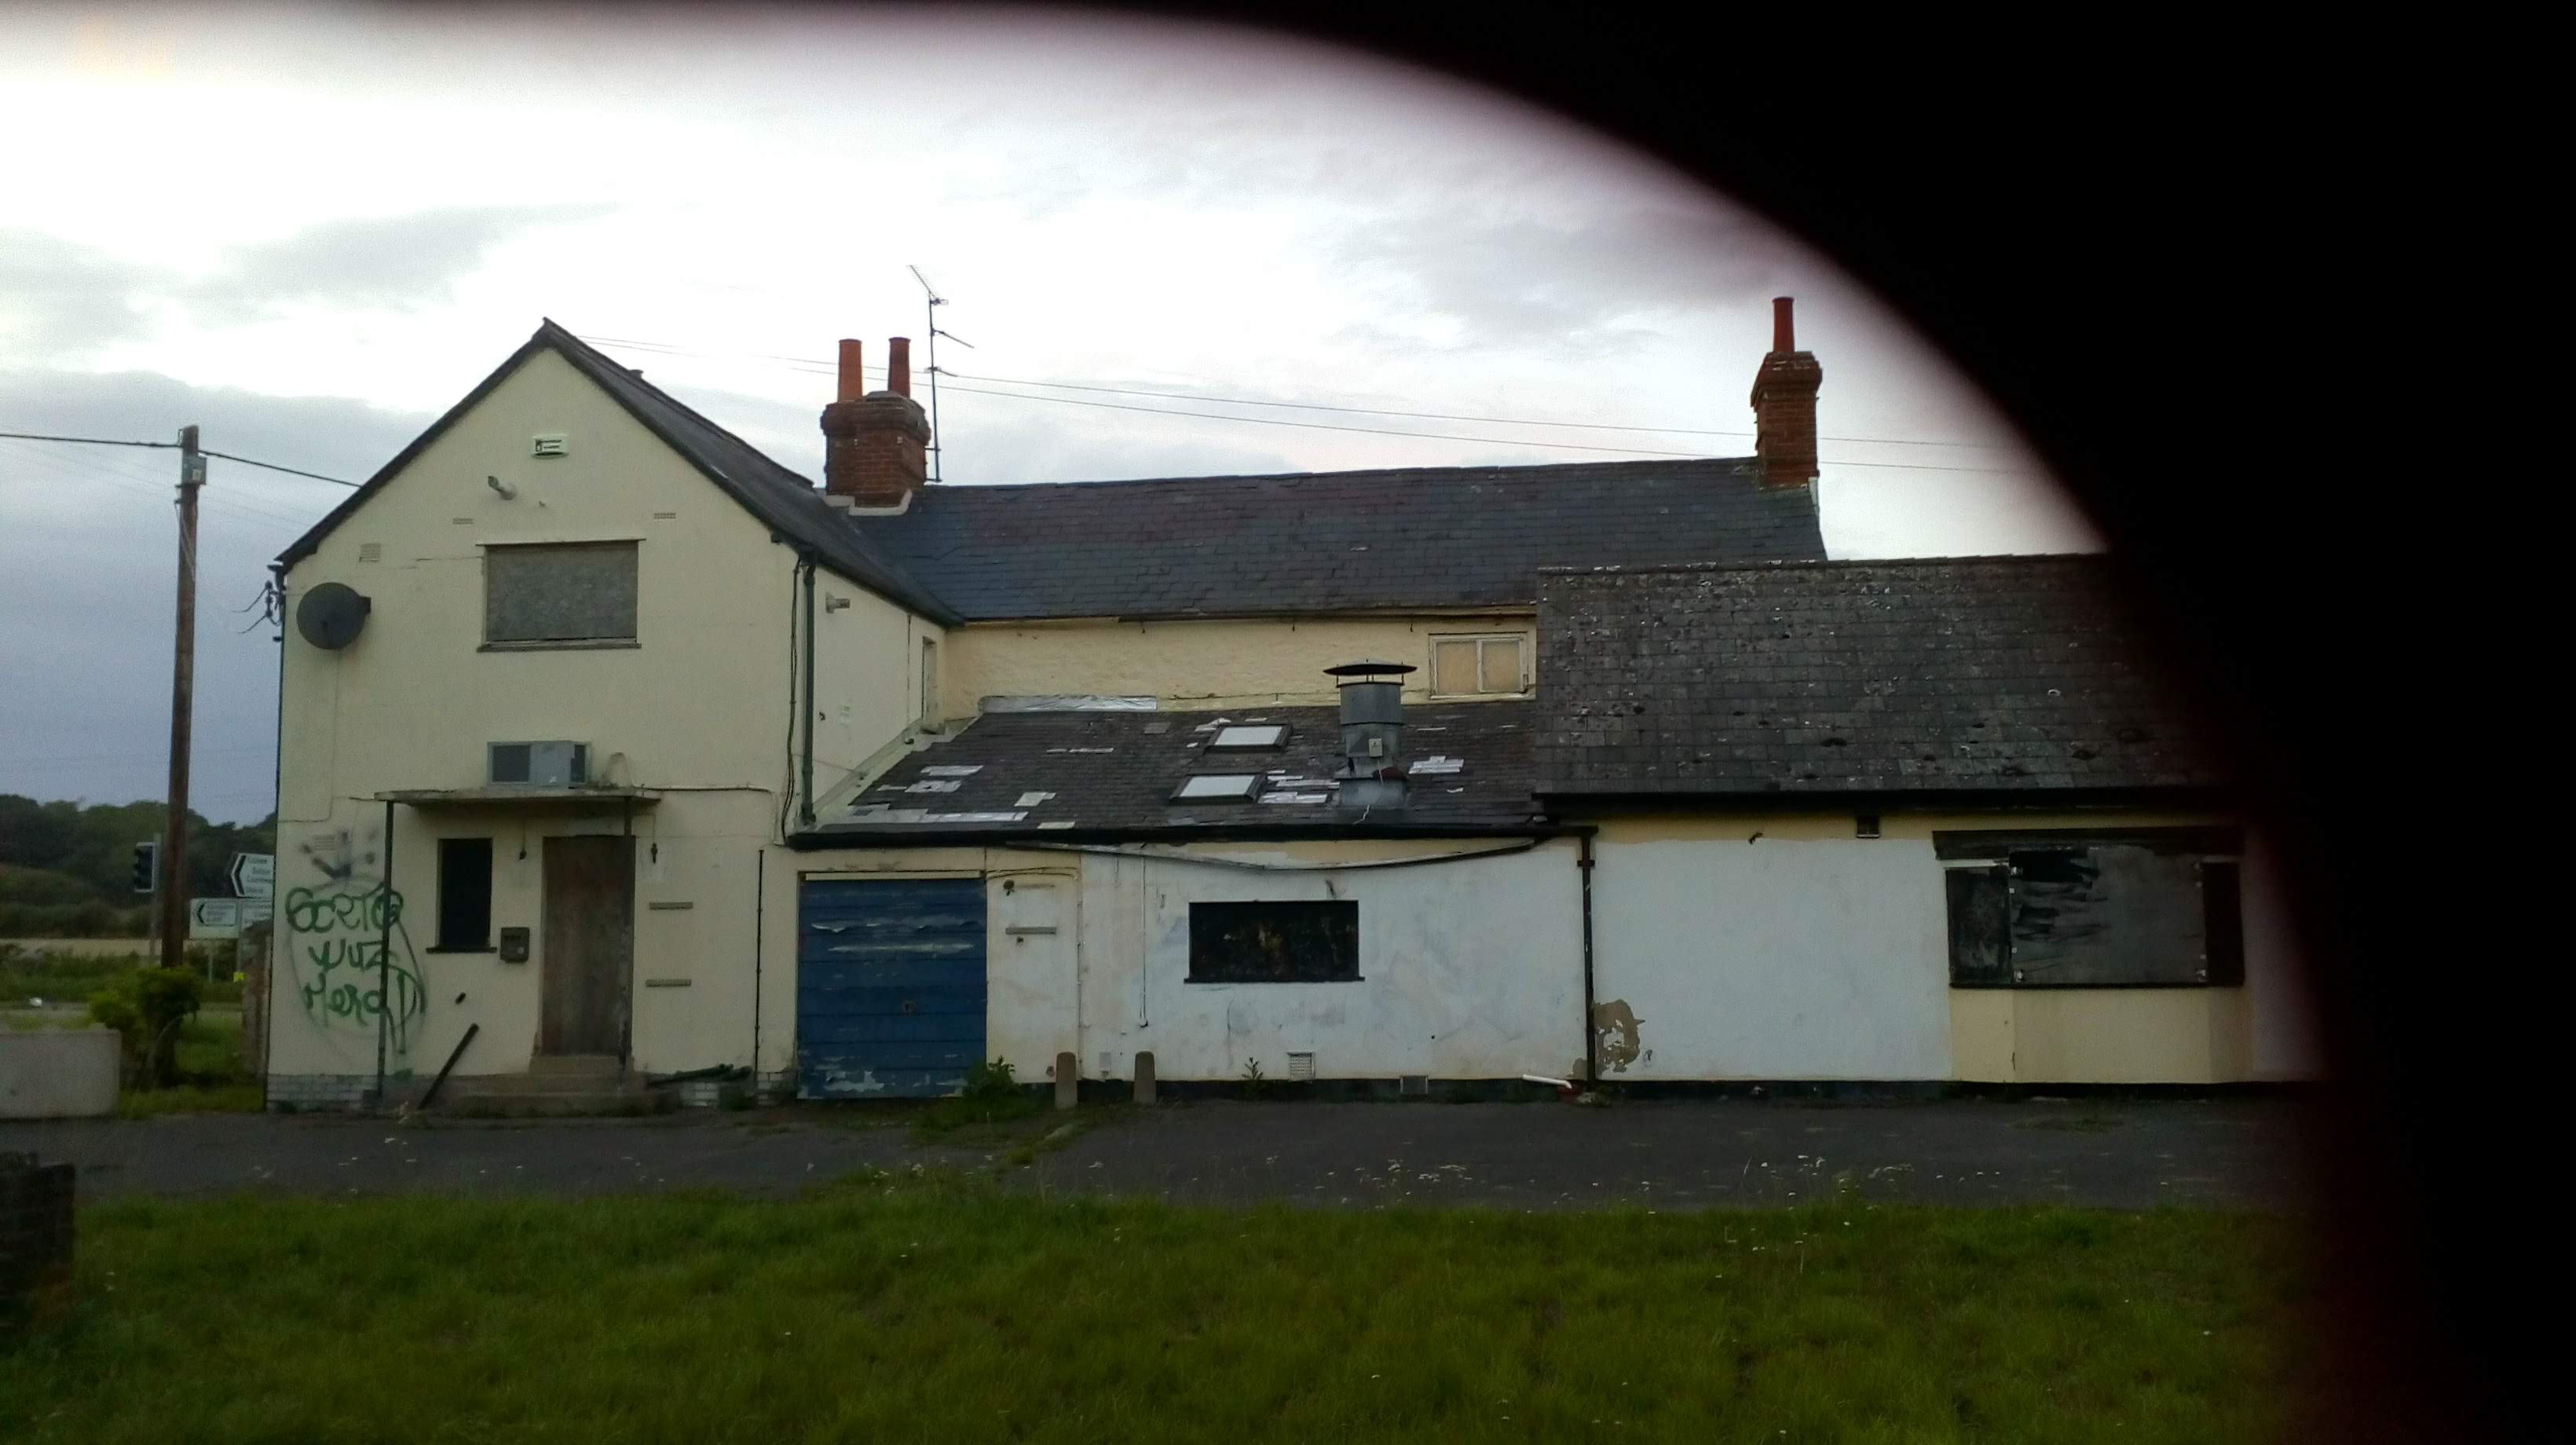 photo showing the building from the rear